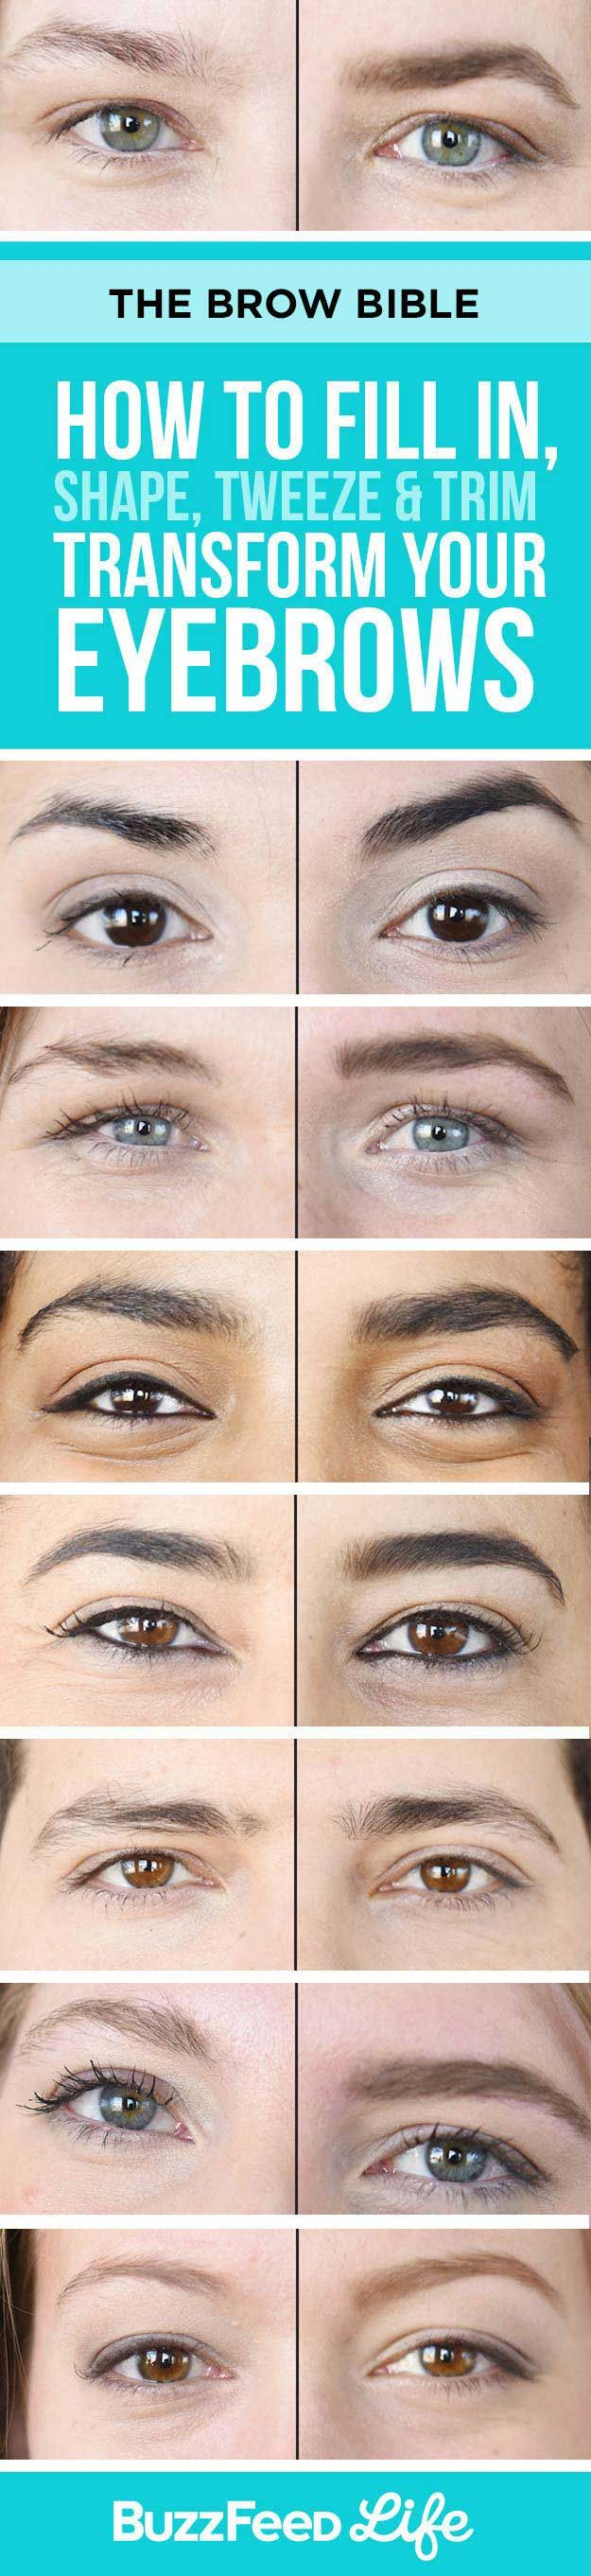 39 Brow Shaping Tutorials (With images) | How to trim ...